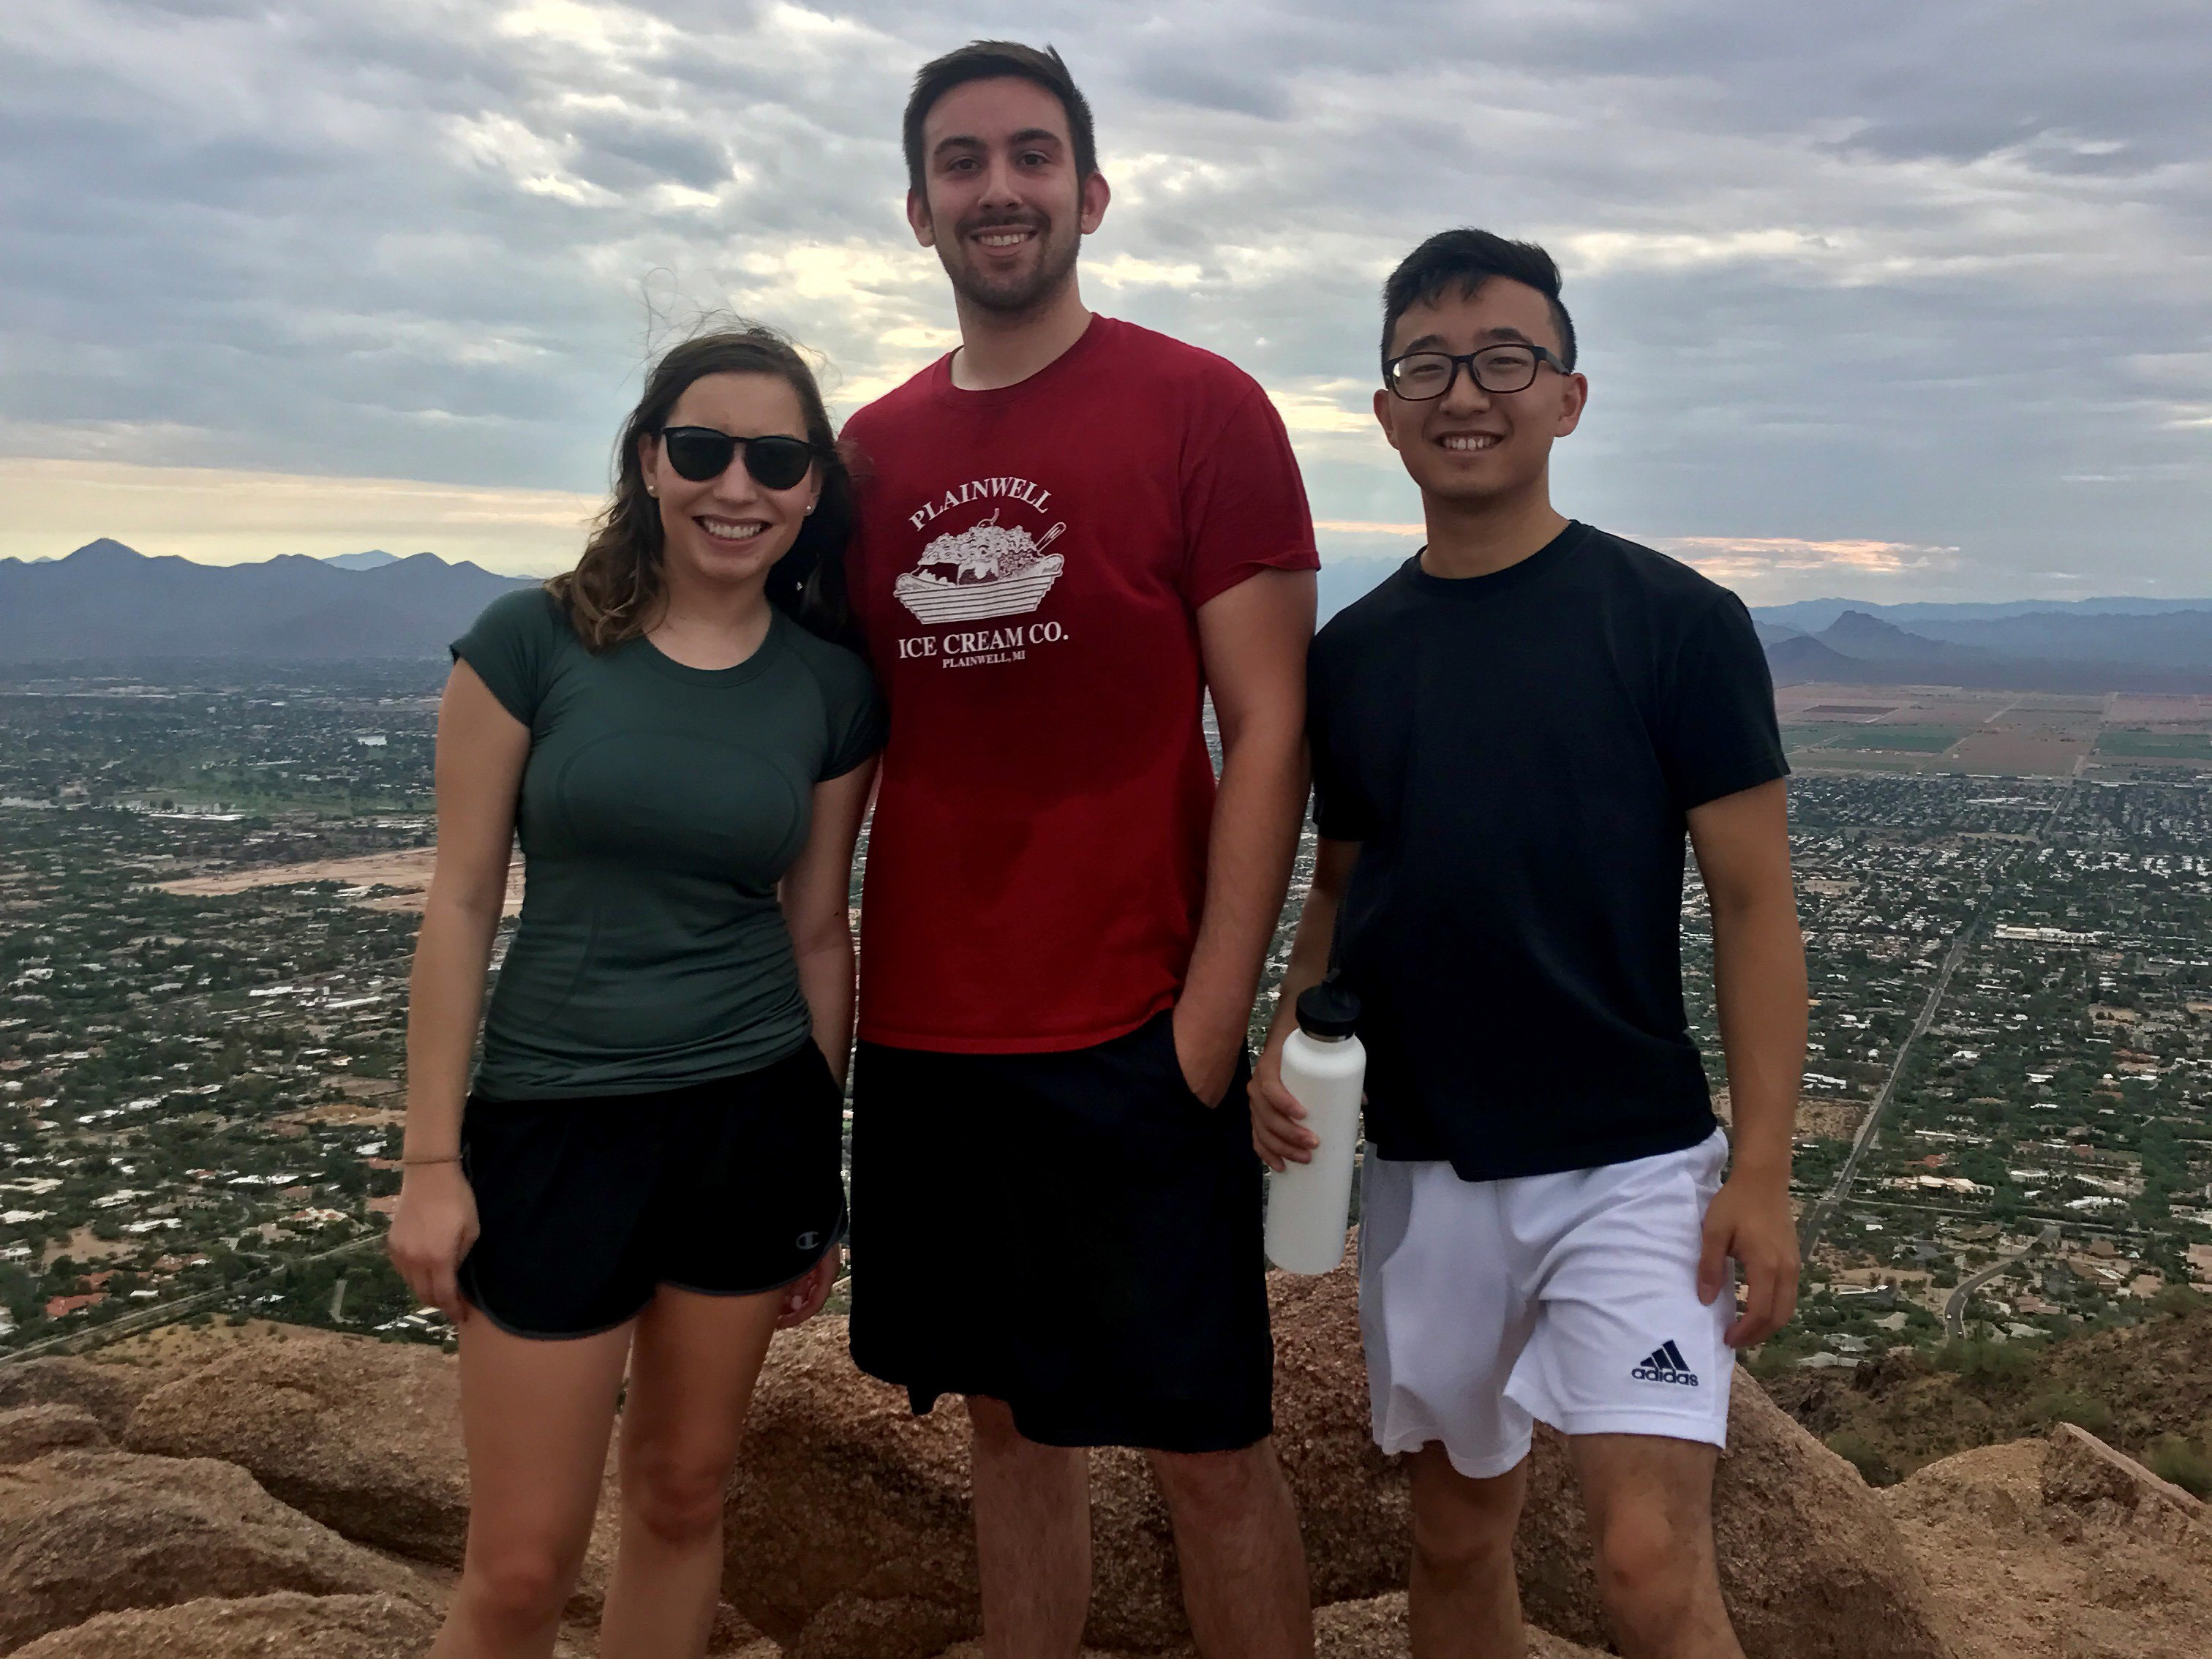 A team that hikes together, stays together! Our program participants took some time to explore Camelback Mountain in AZ.